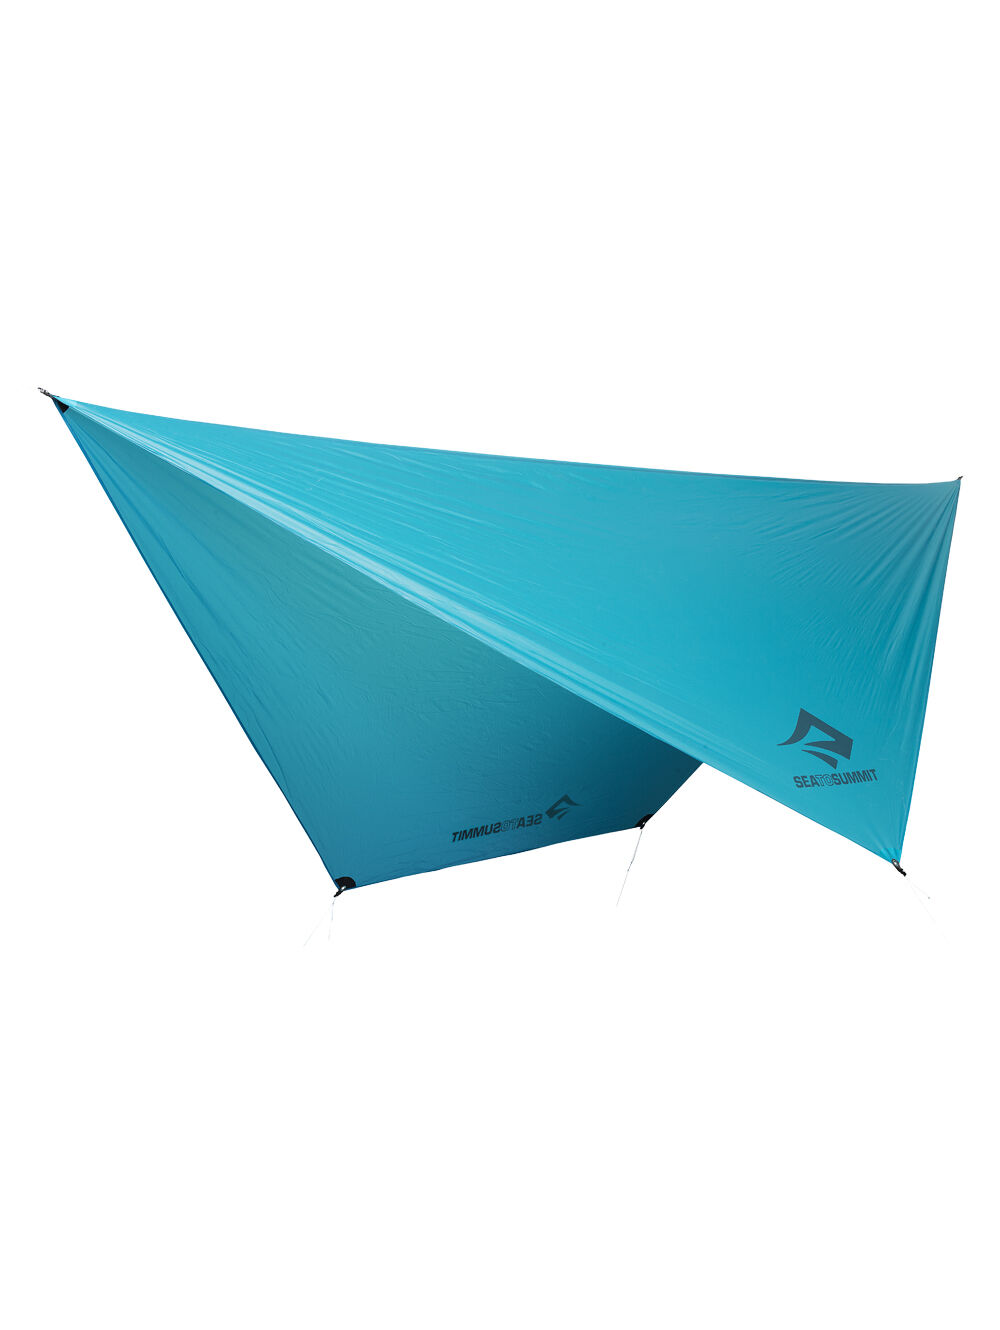 Tarp para redes (Hammock Tarp) - Sea to Summit